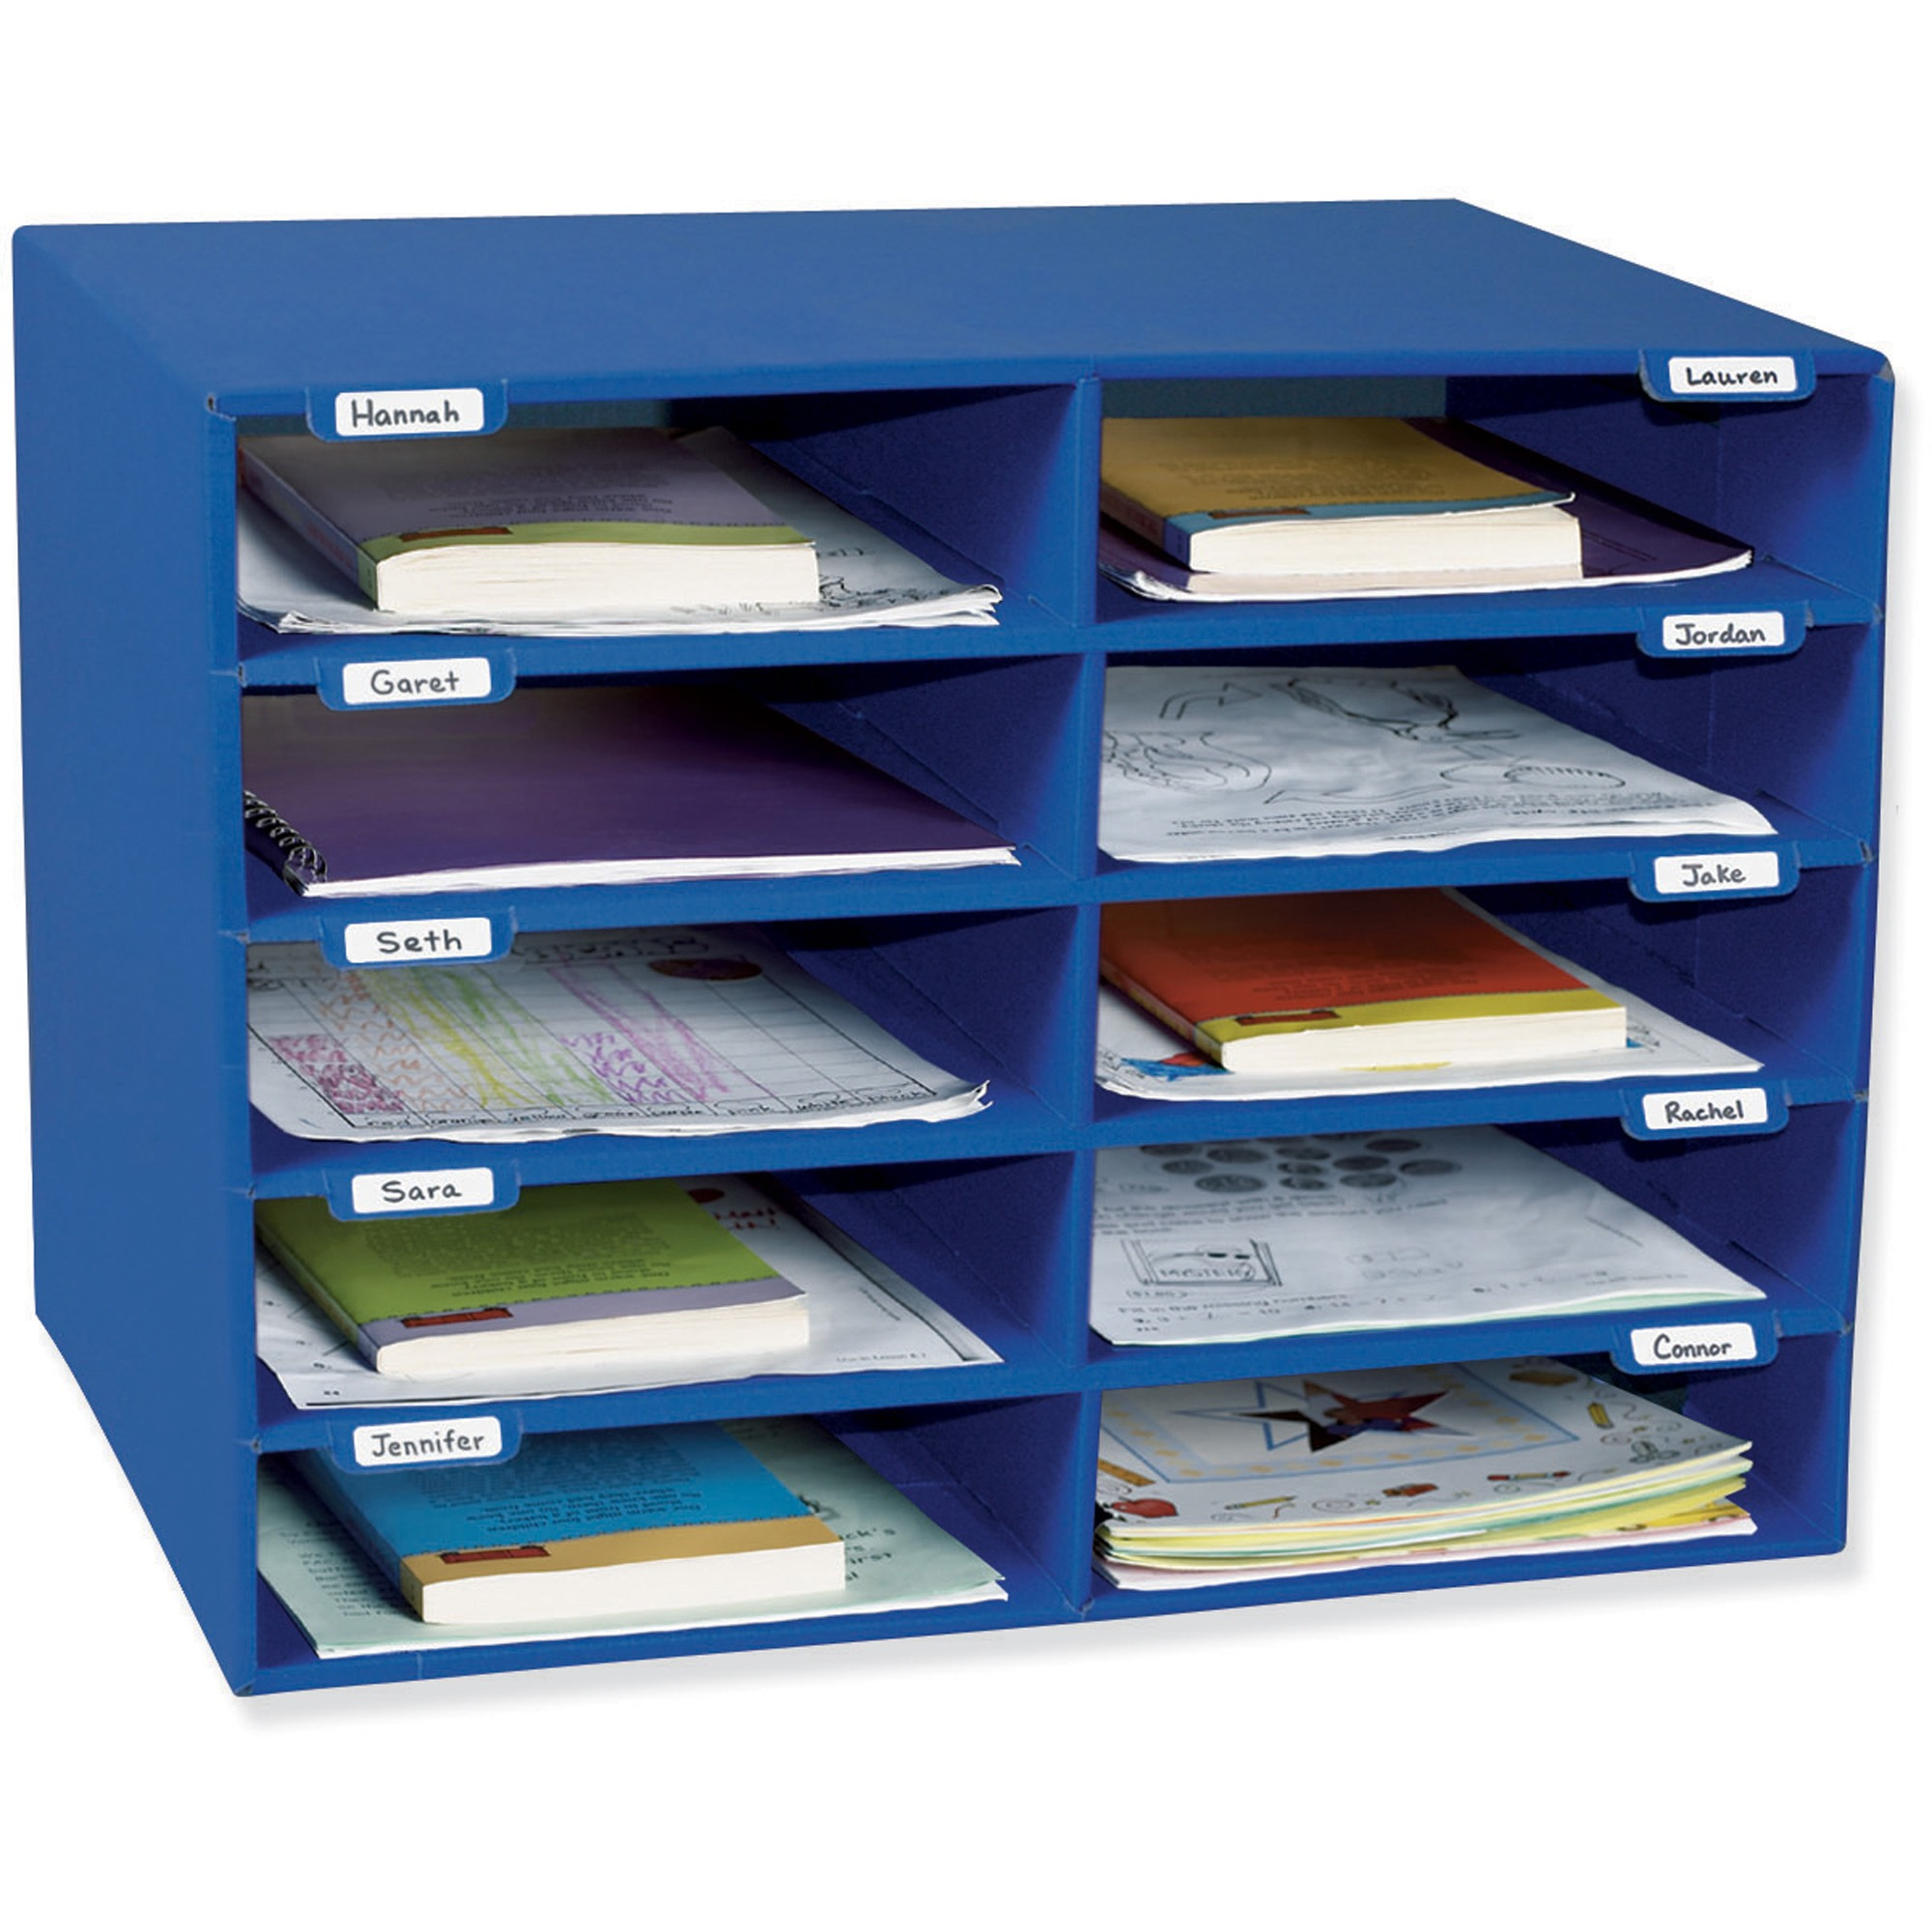 15 slot paper organizer what are computer expansion slots used for